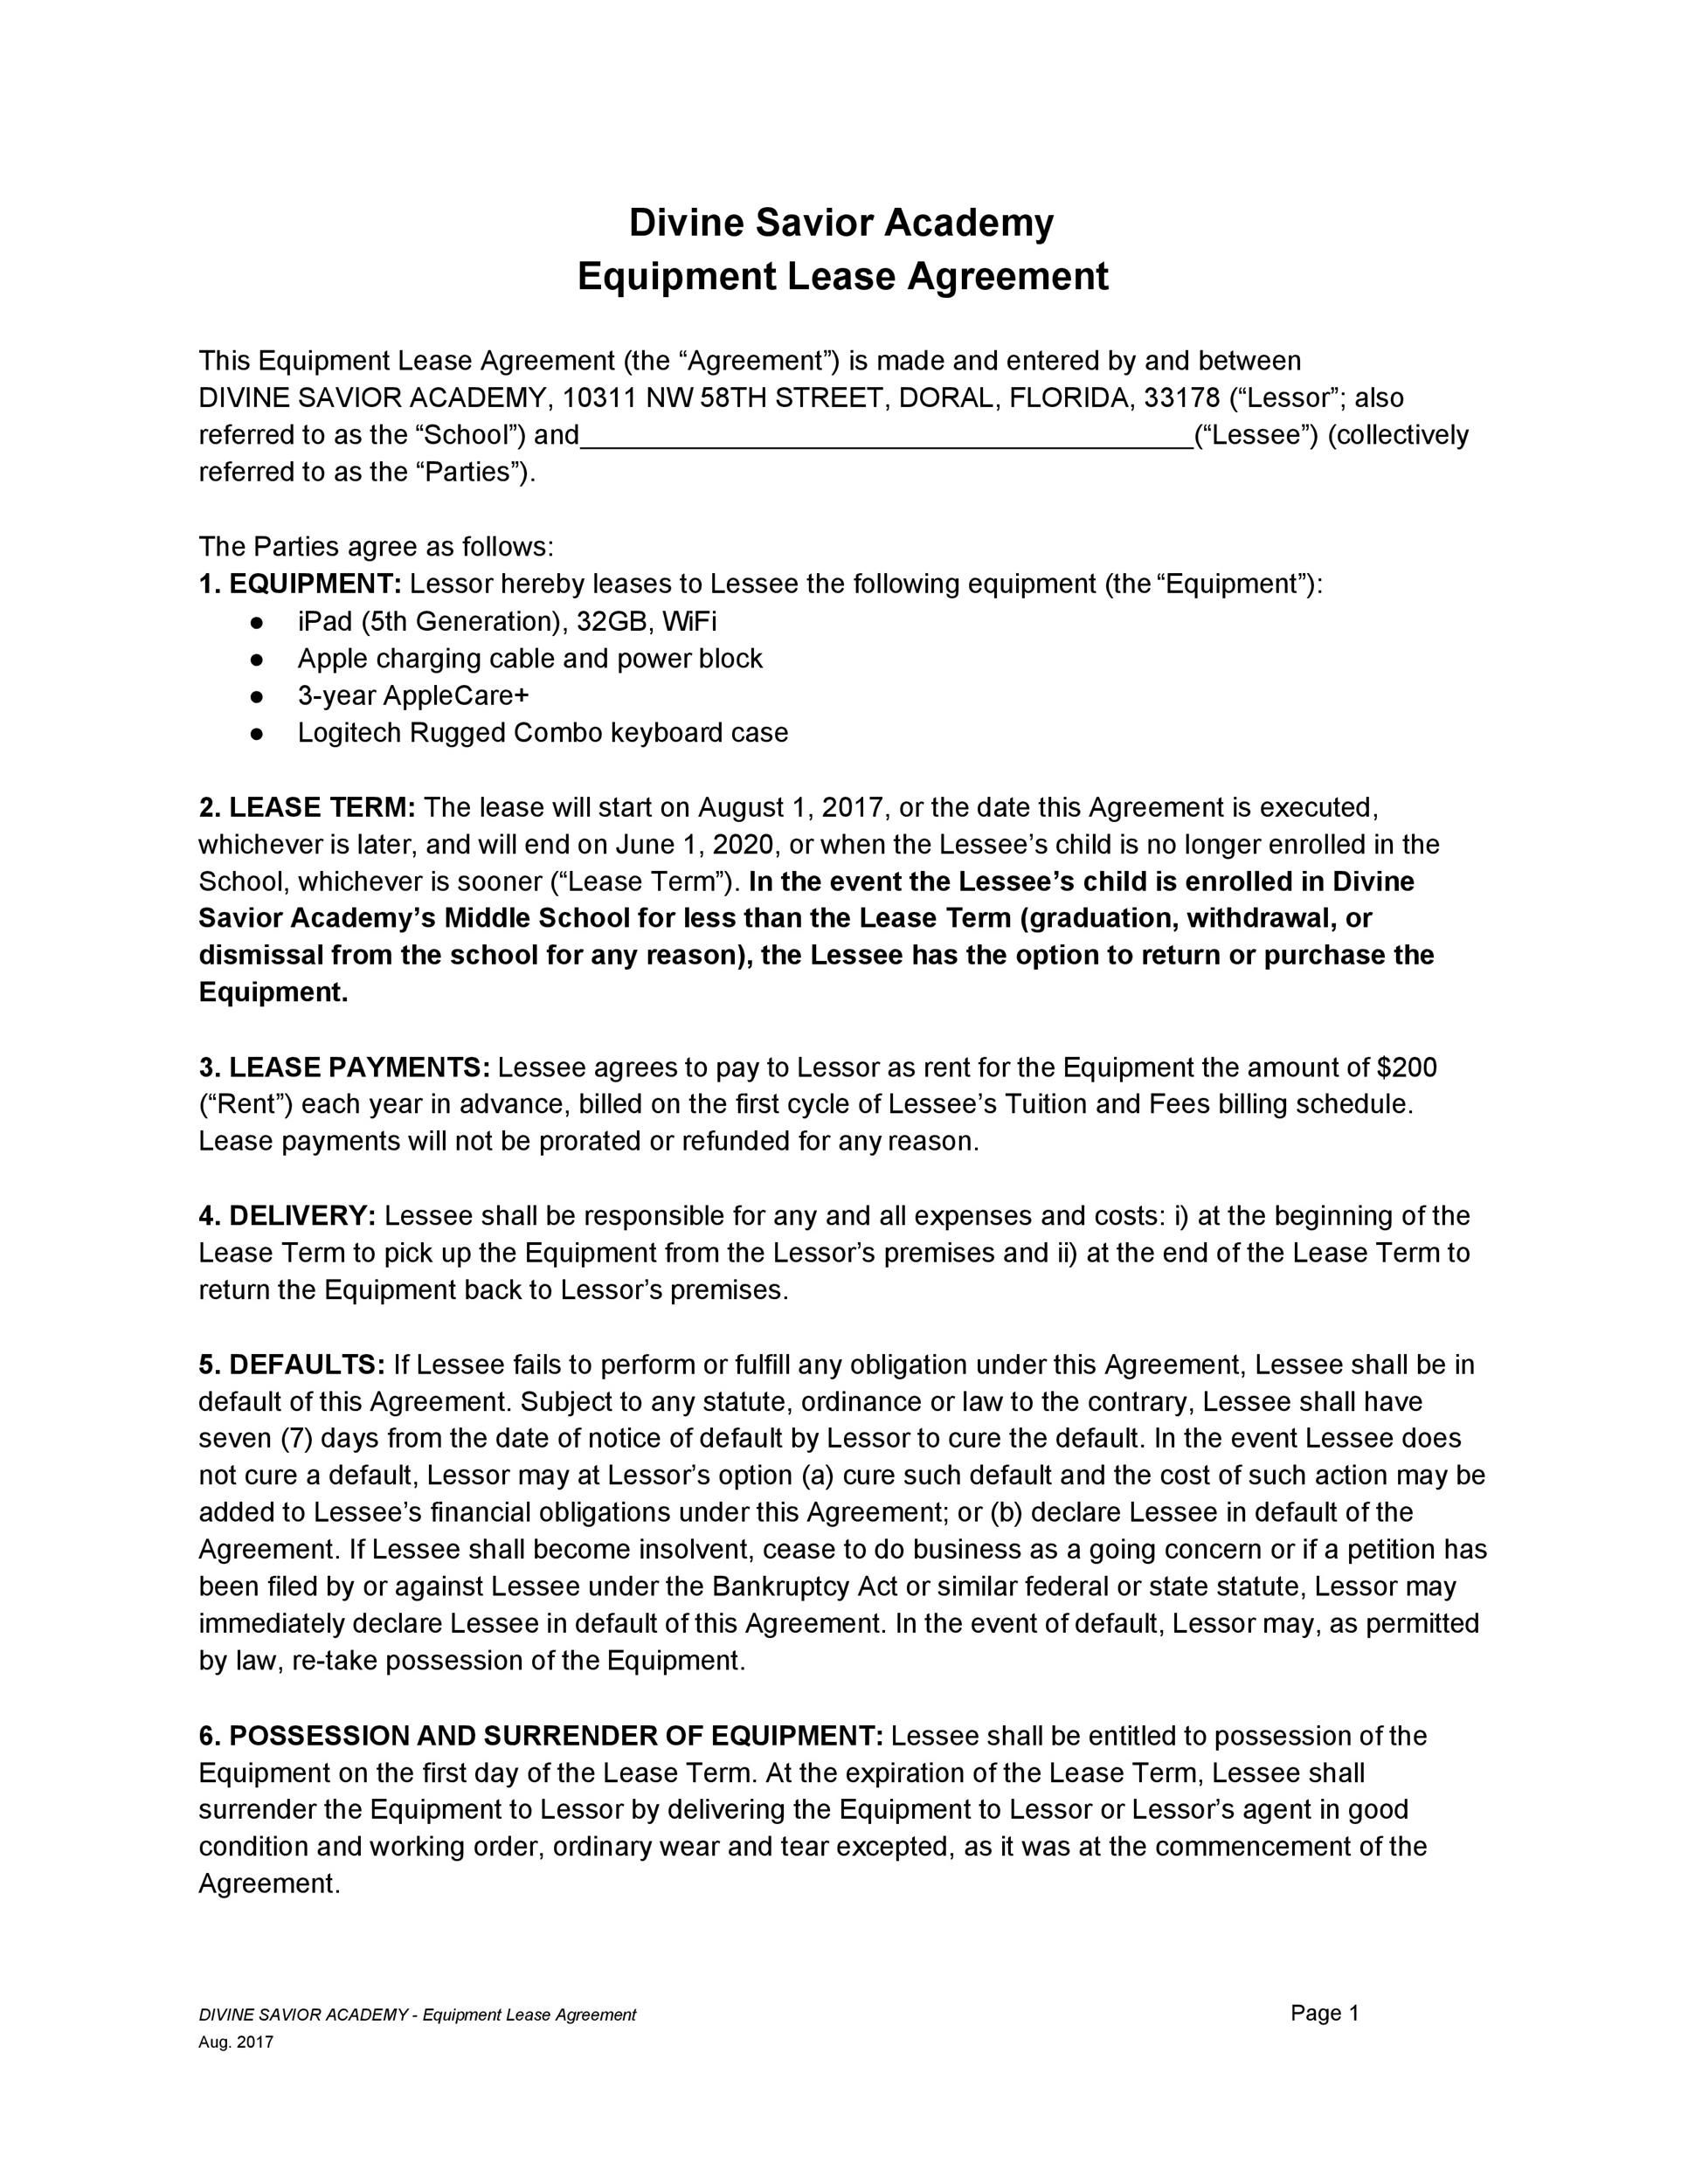 006 Awful Equipment Lease Contract Template Free High Definition  Agreement WordFull